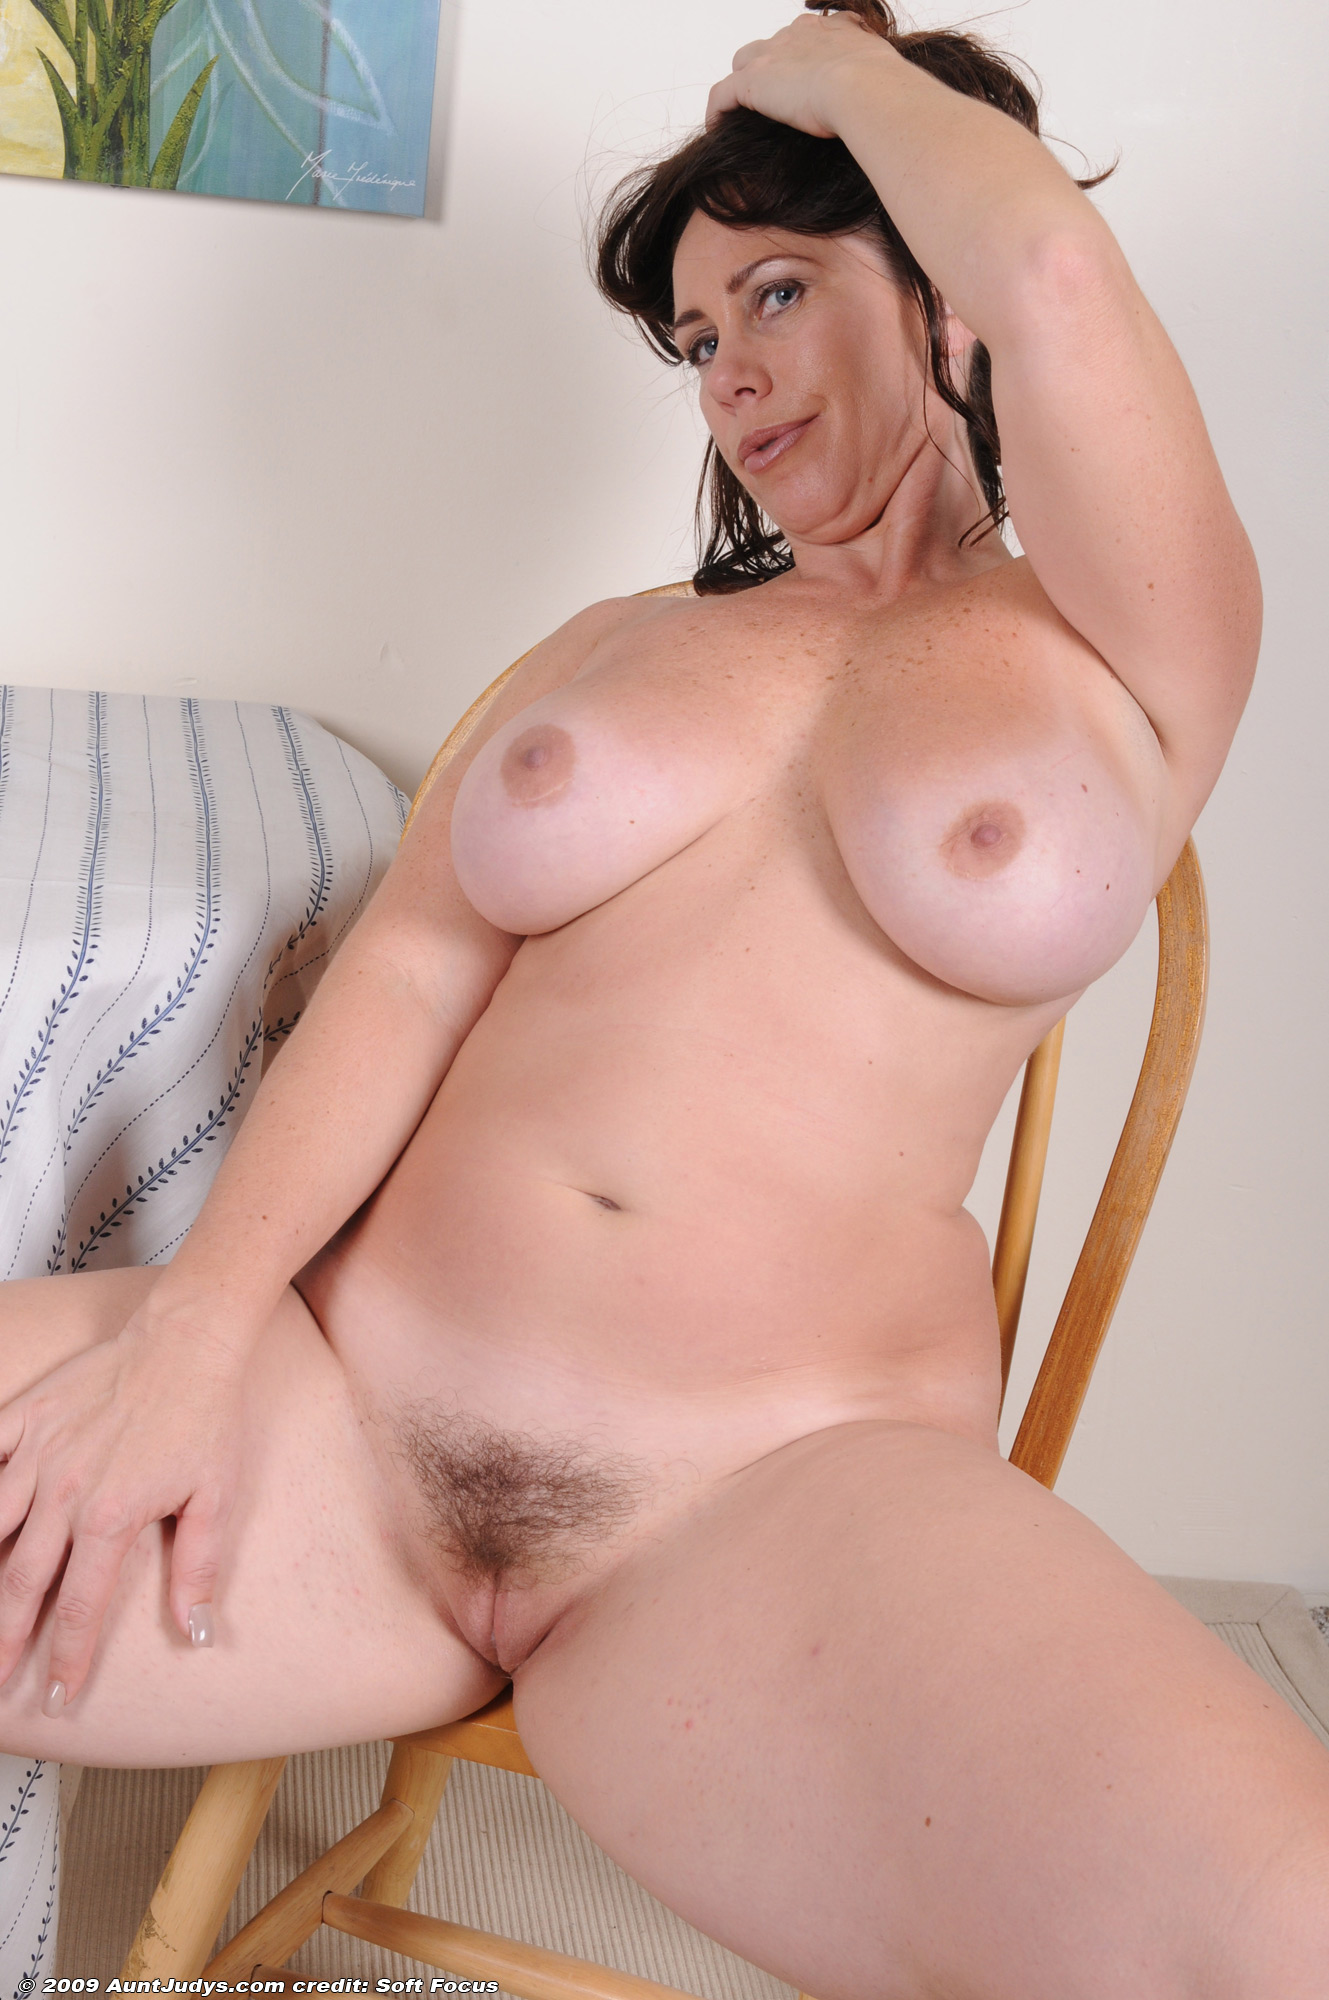 Violet monroe has a huge fake cock for her pussy 10